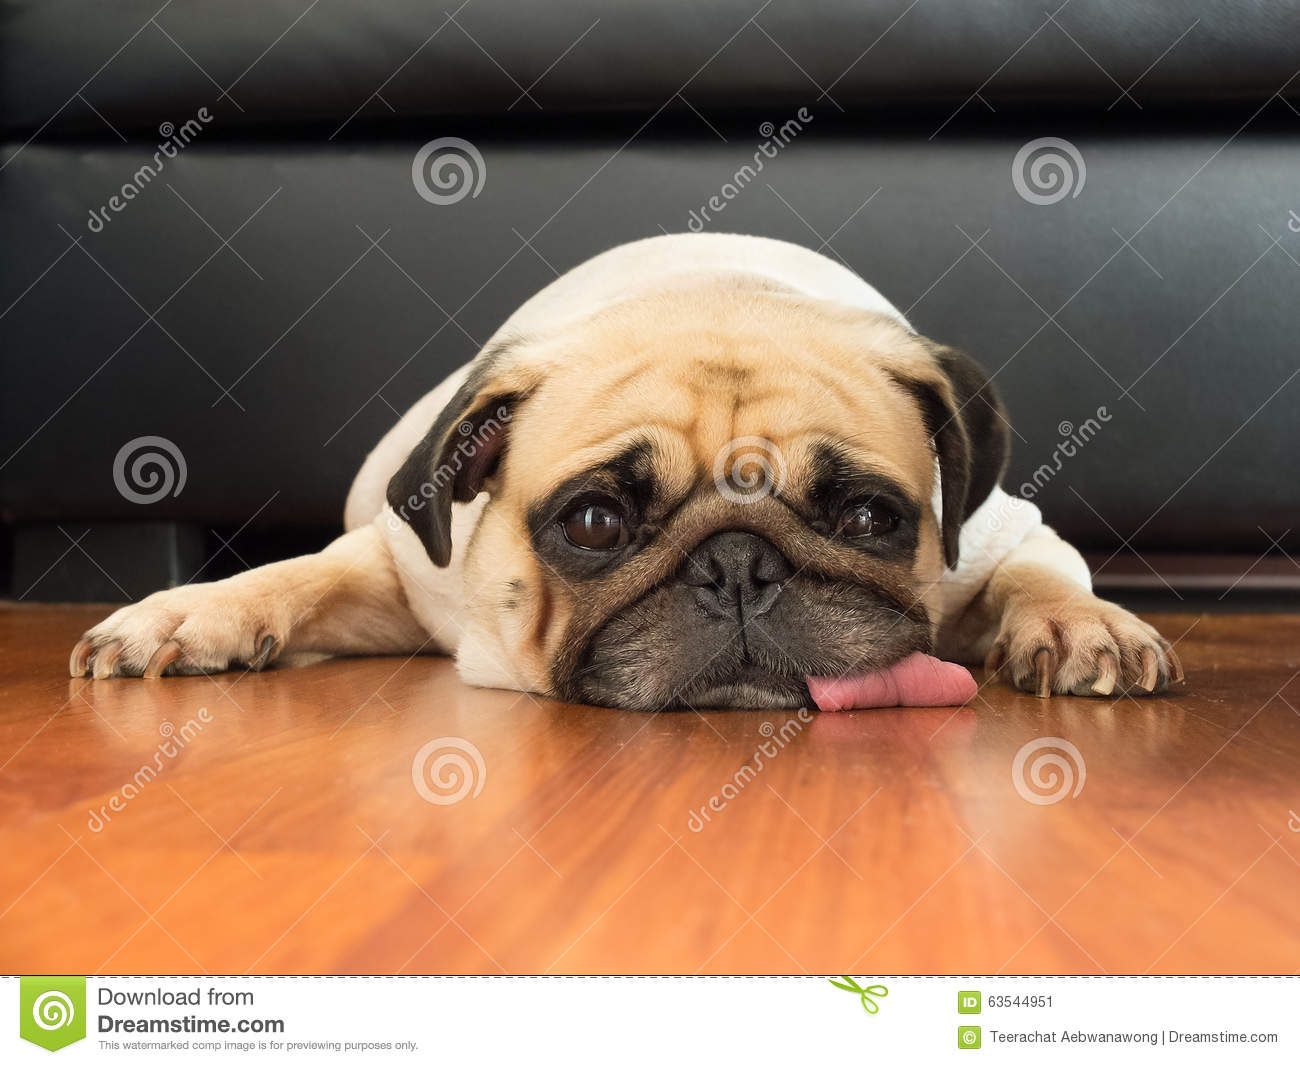 Close-up face of Cute pug puppy dog sleeping rest open eye by chin and tongue lay down floor